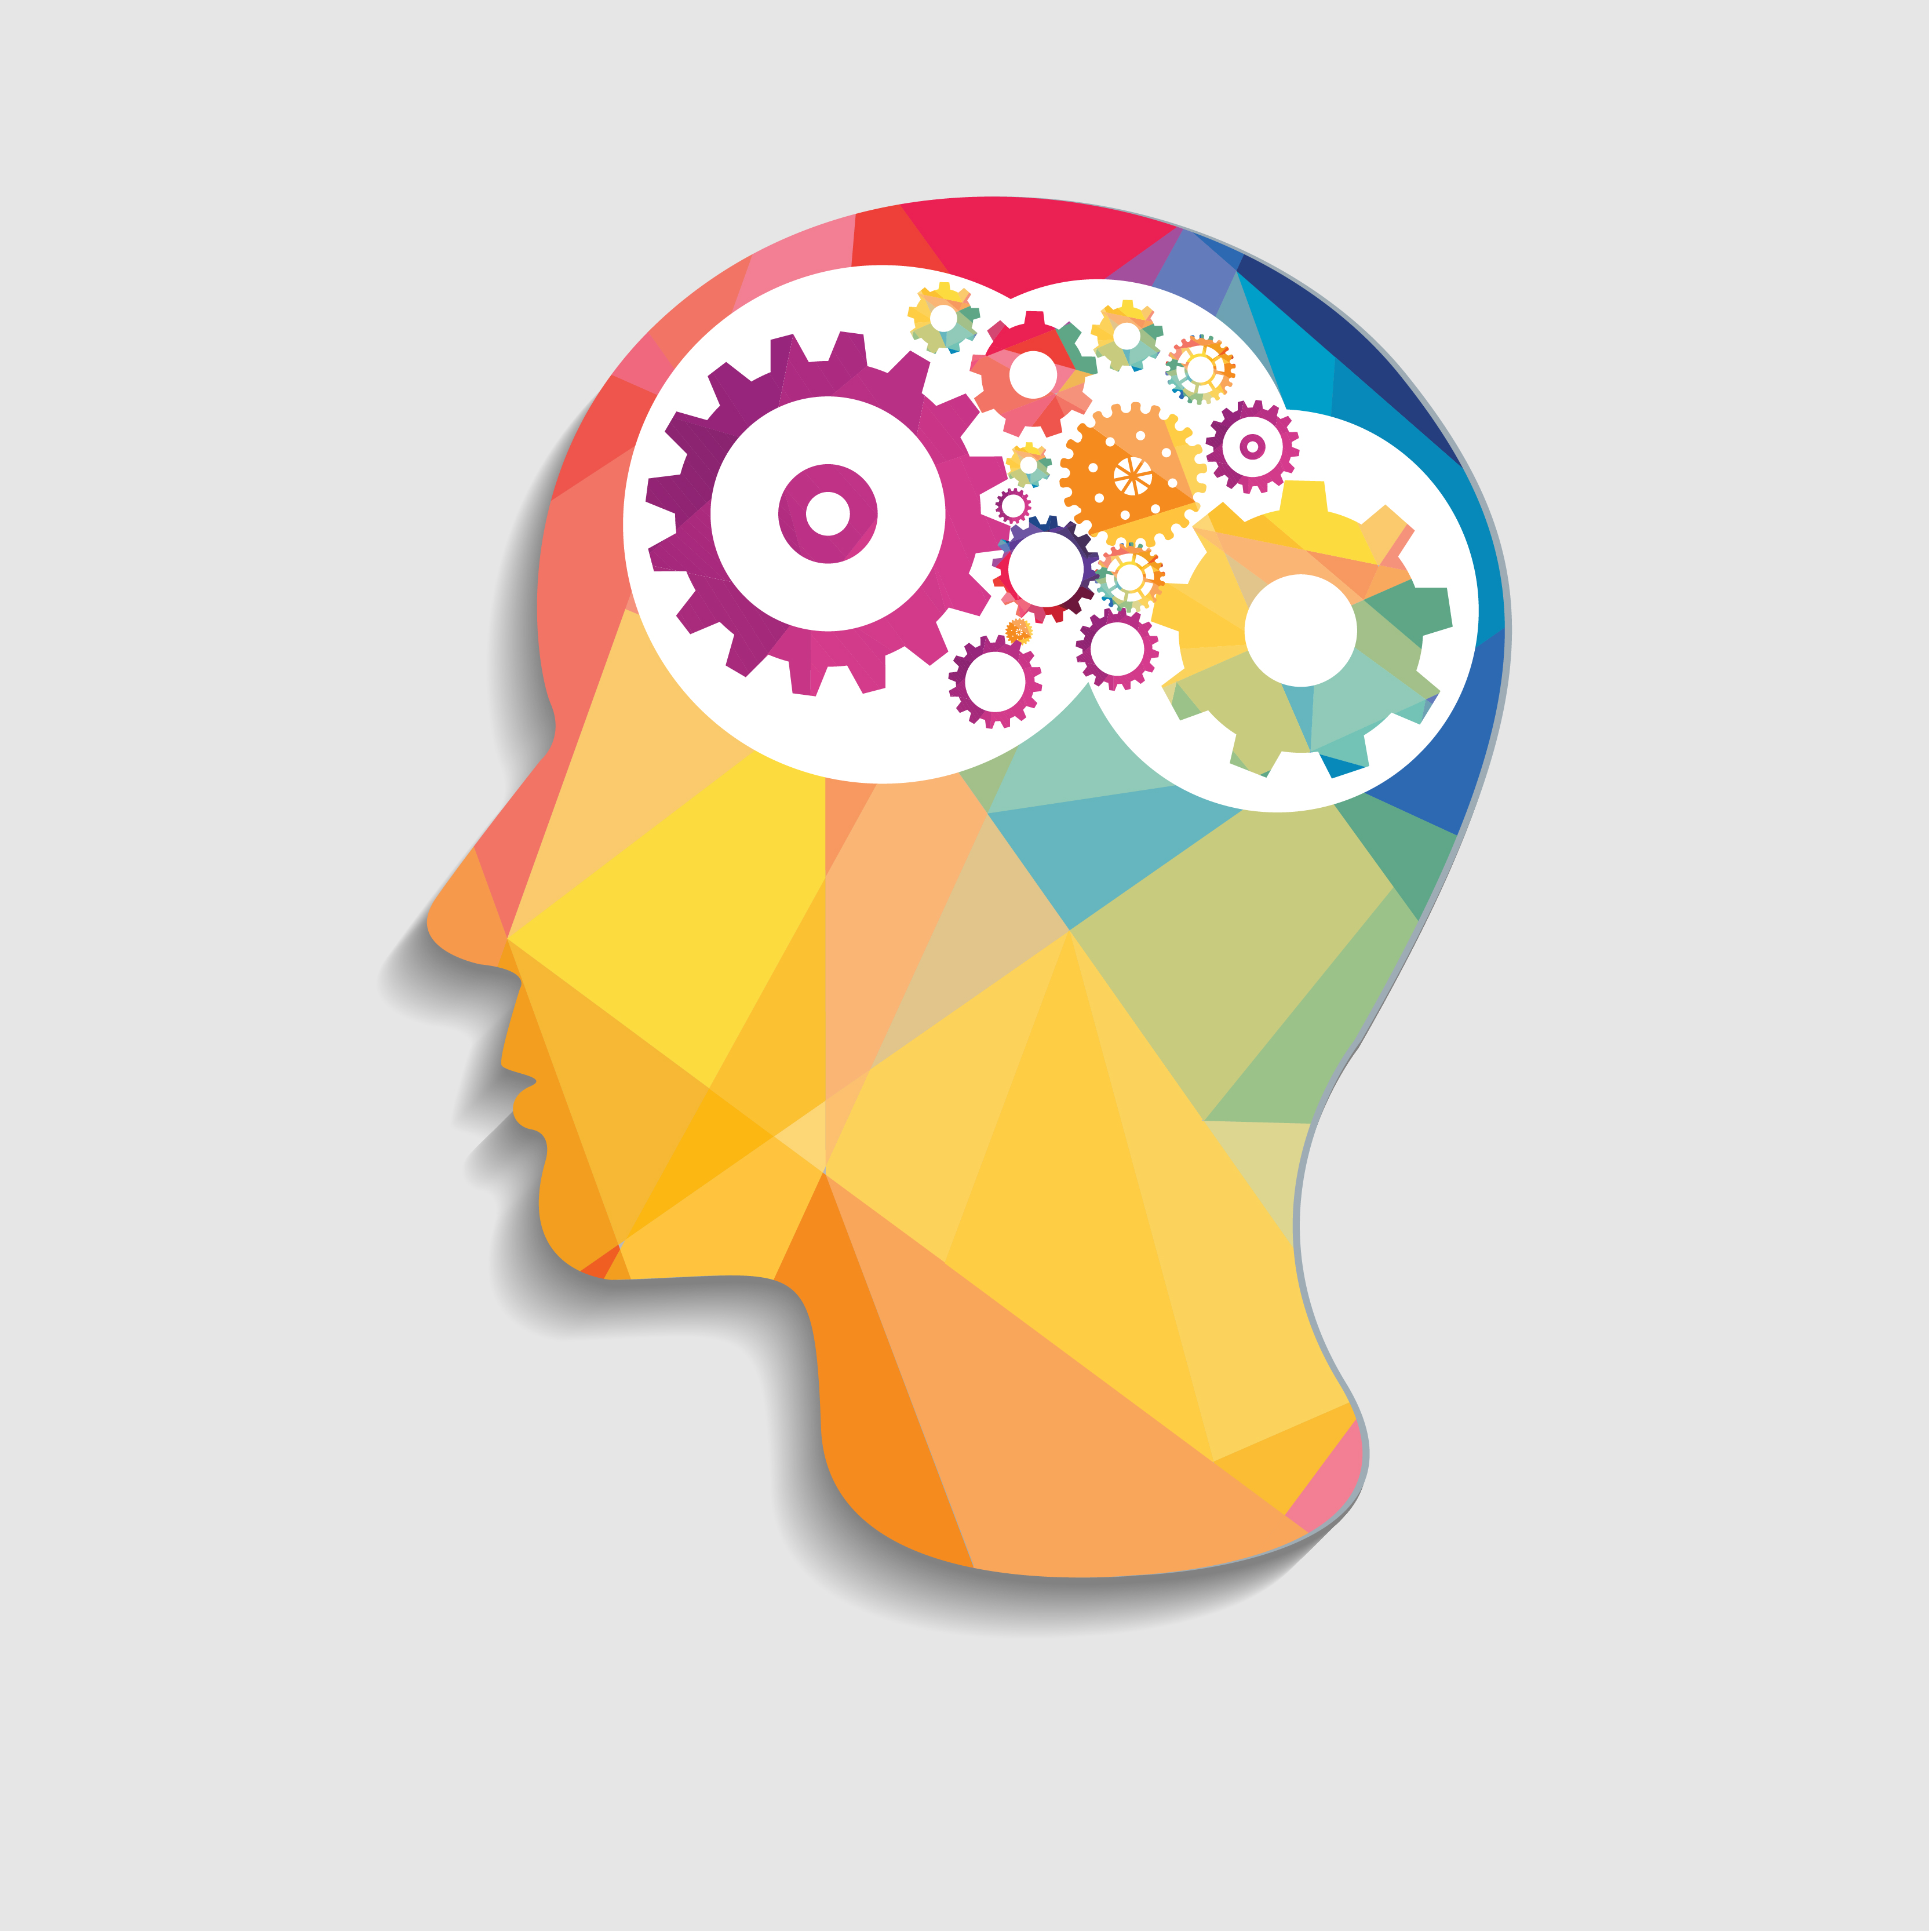 Whitepaper: Cracking the code of mental well-being in the new hybrid world of work